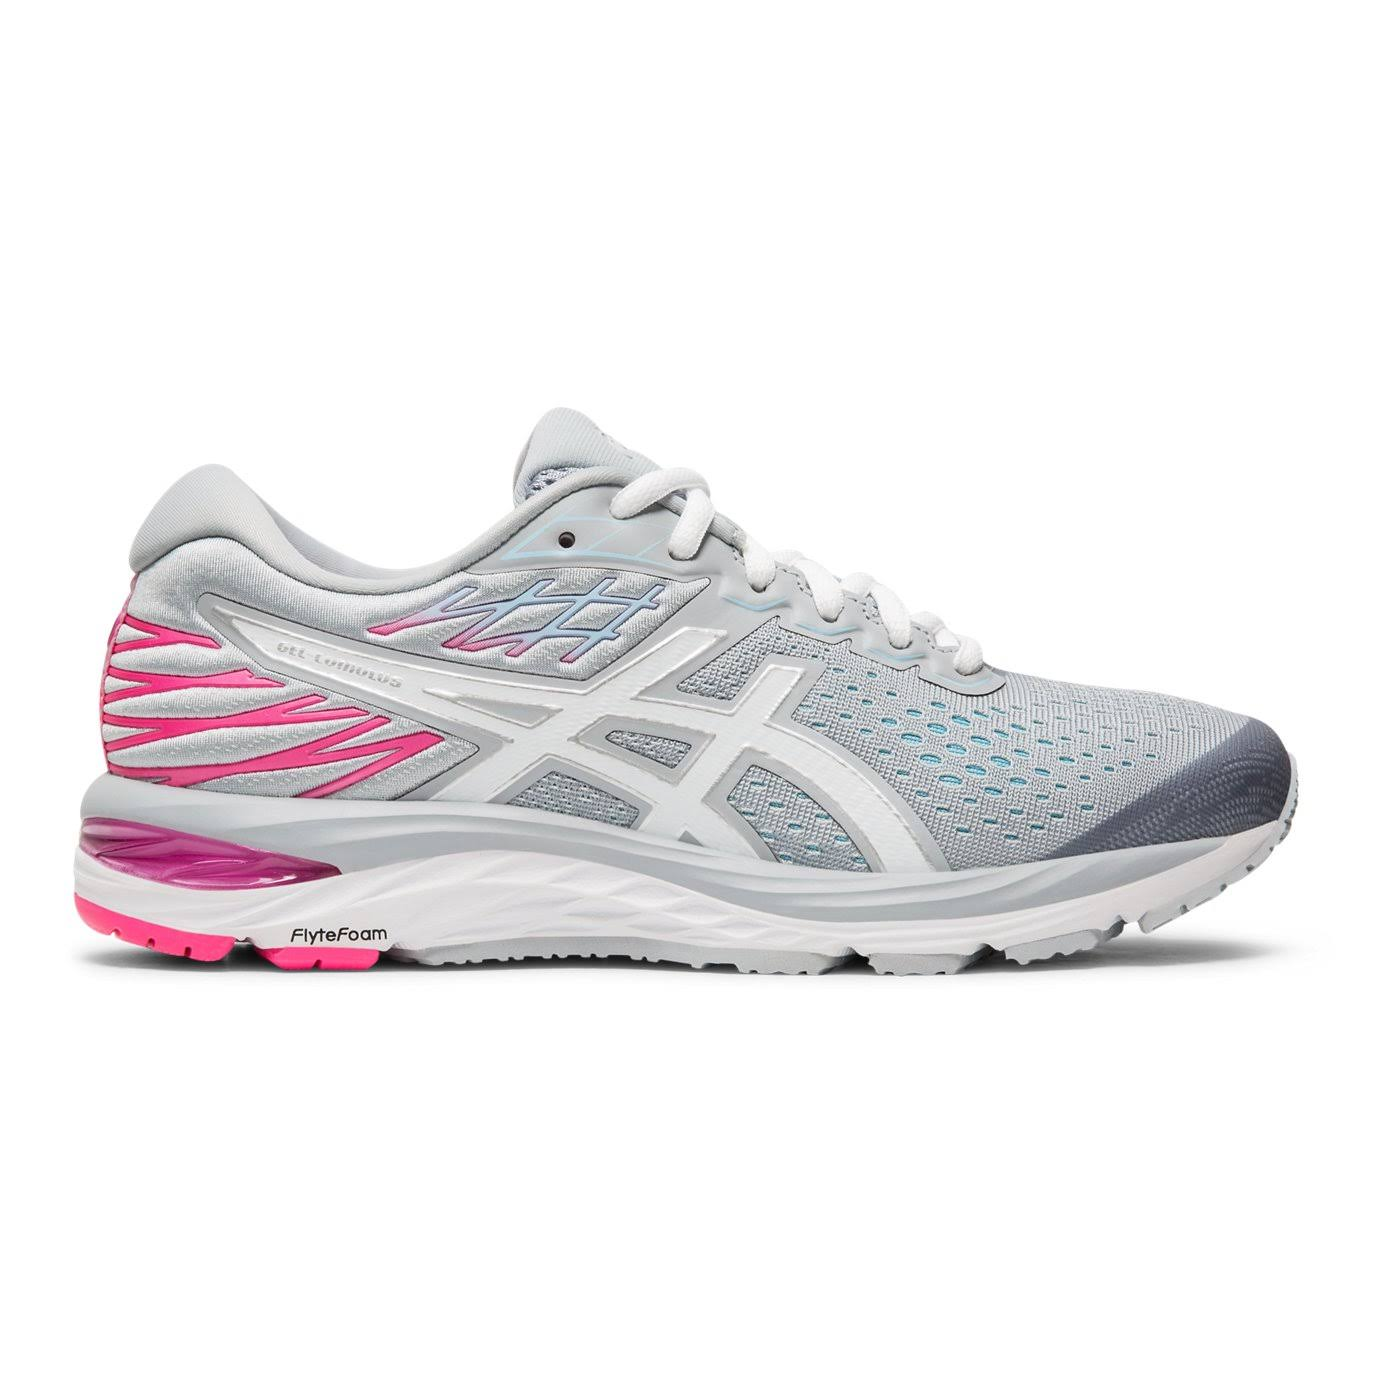 Asics Women's Gel Cumulus 21 Running Shoe - Piedmont Grey/White, 10